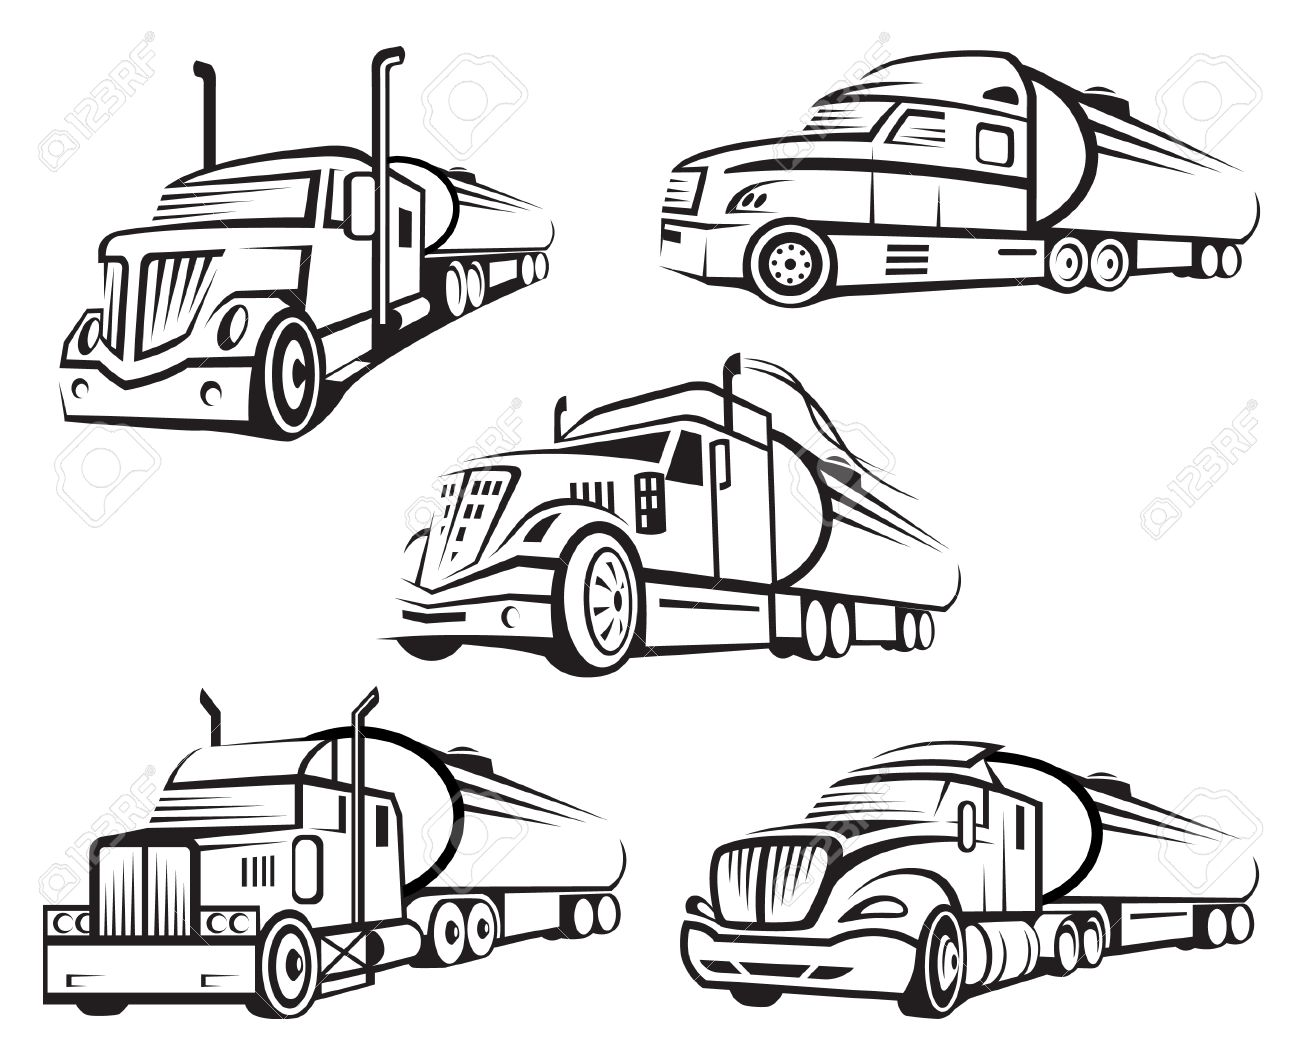 Tanker Truck Drawing At Getdrawings